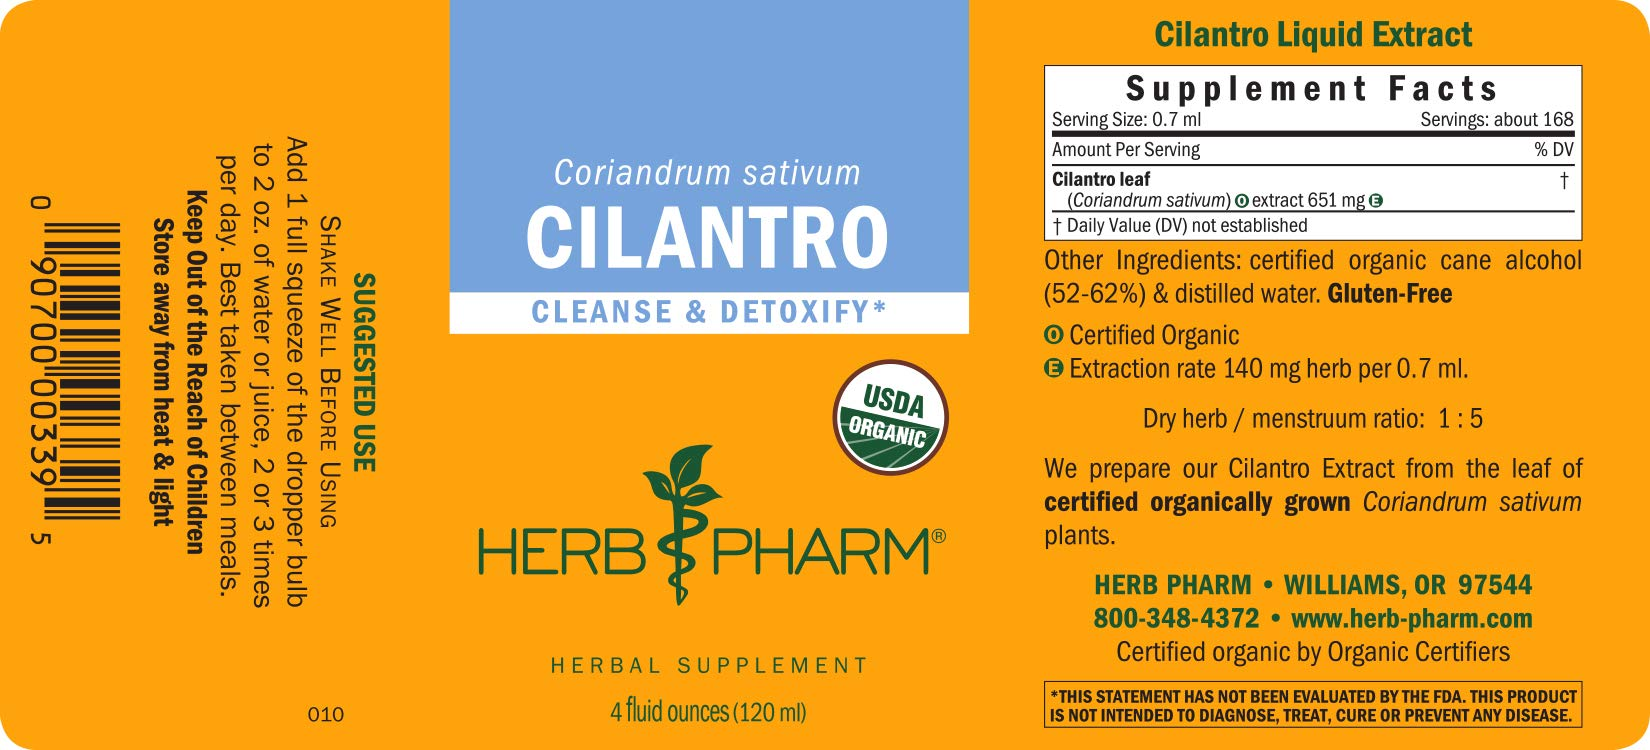 Herb Pharm Certified Organic Cilantro Liquid Extract for Cleansing and Detoxification Support - 4 Ounce by Herb Pharm (Image #6)